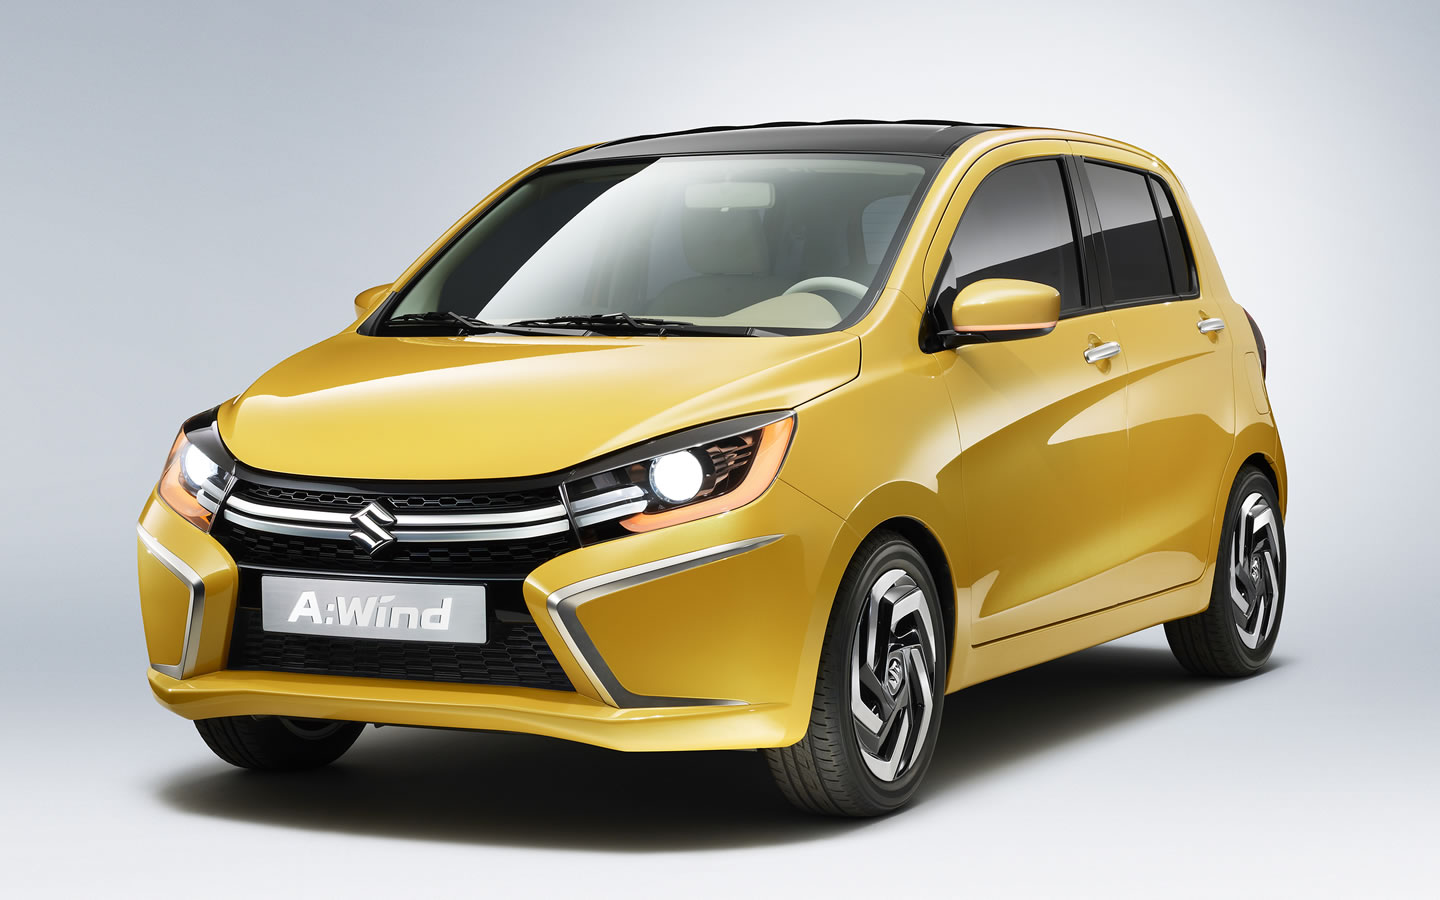 Upcoming Celerio To Feature Automatic Manual Transmission